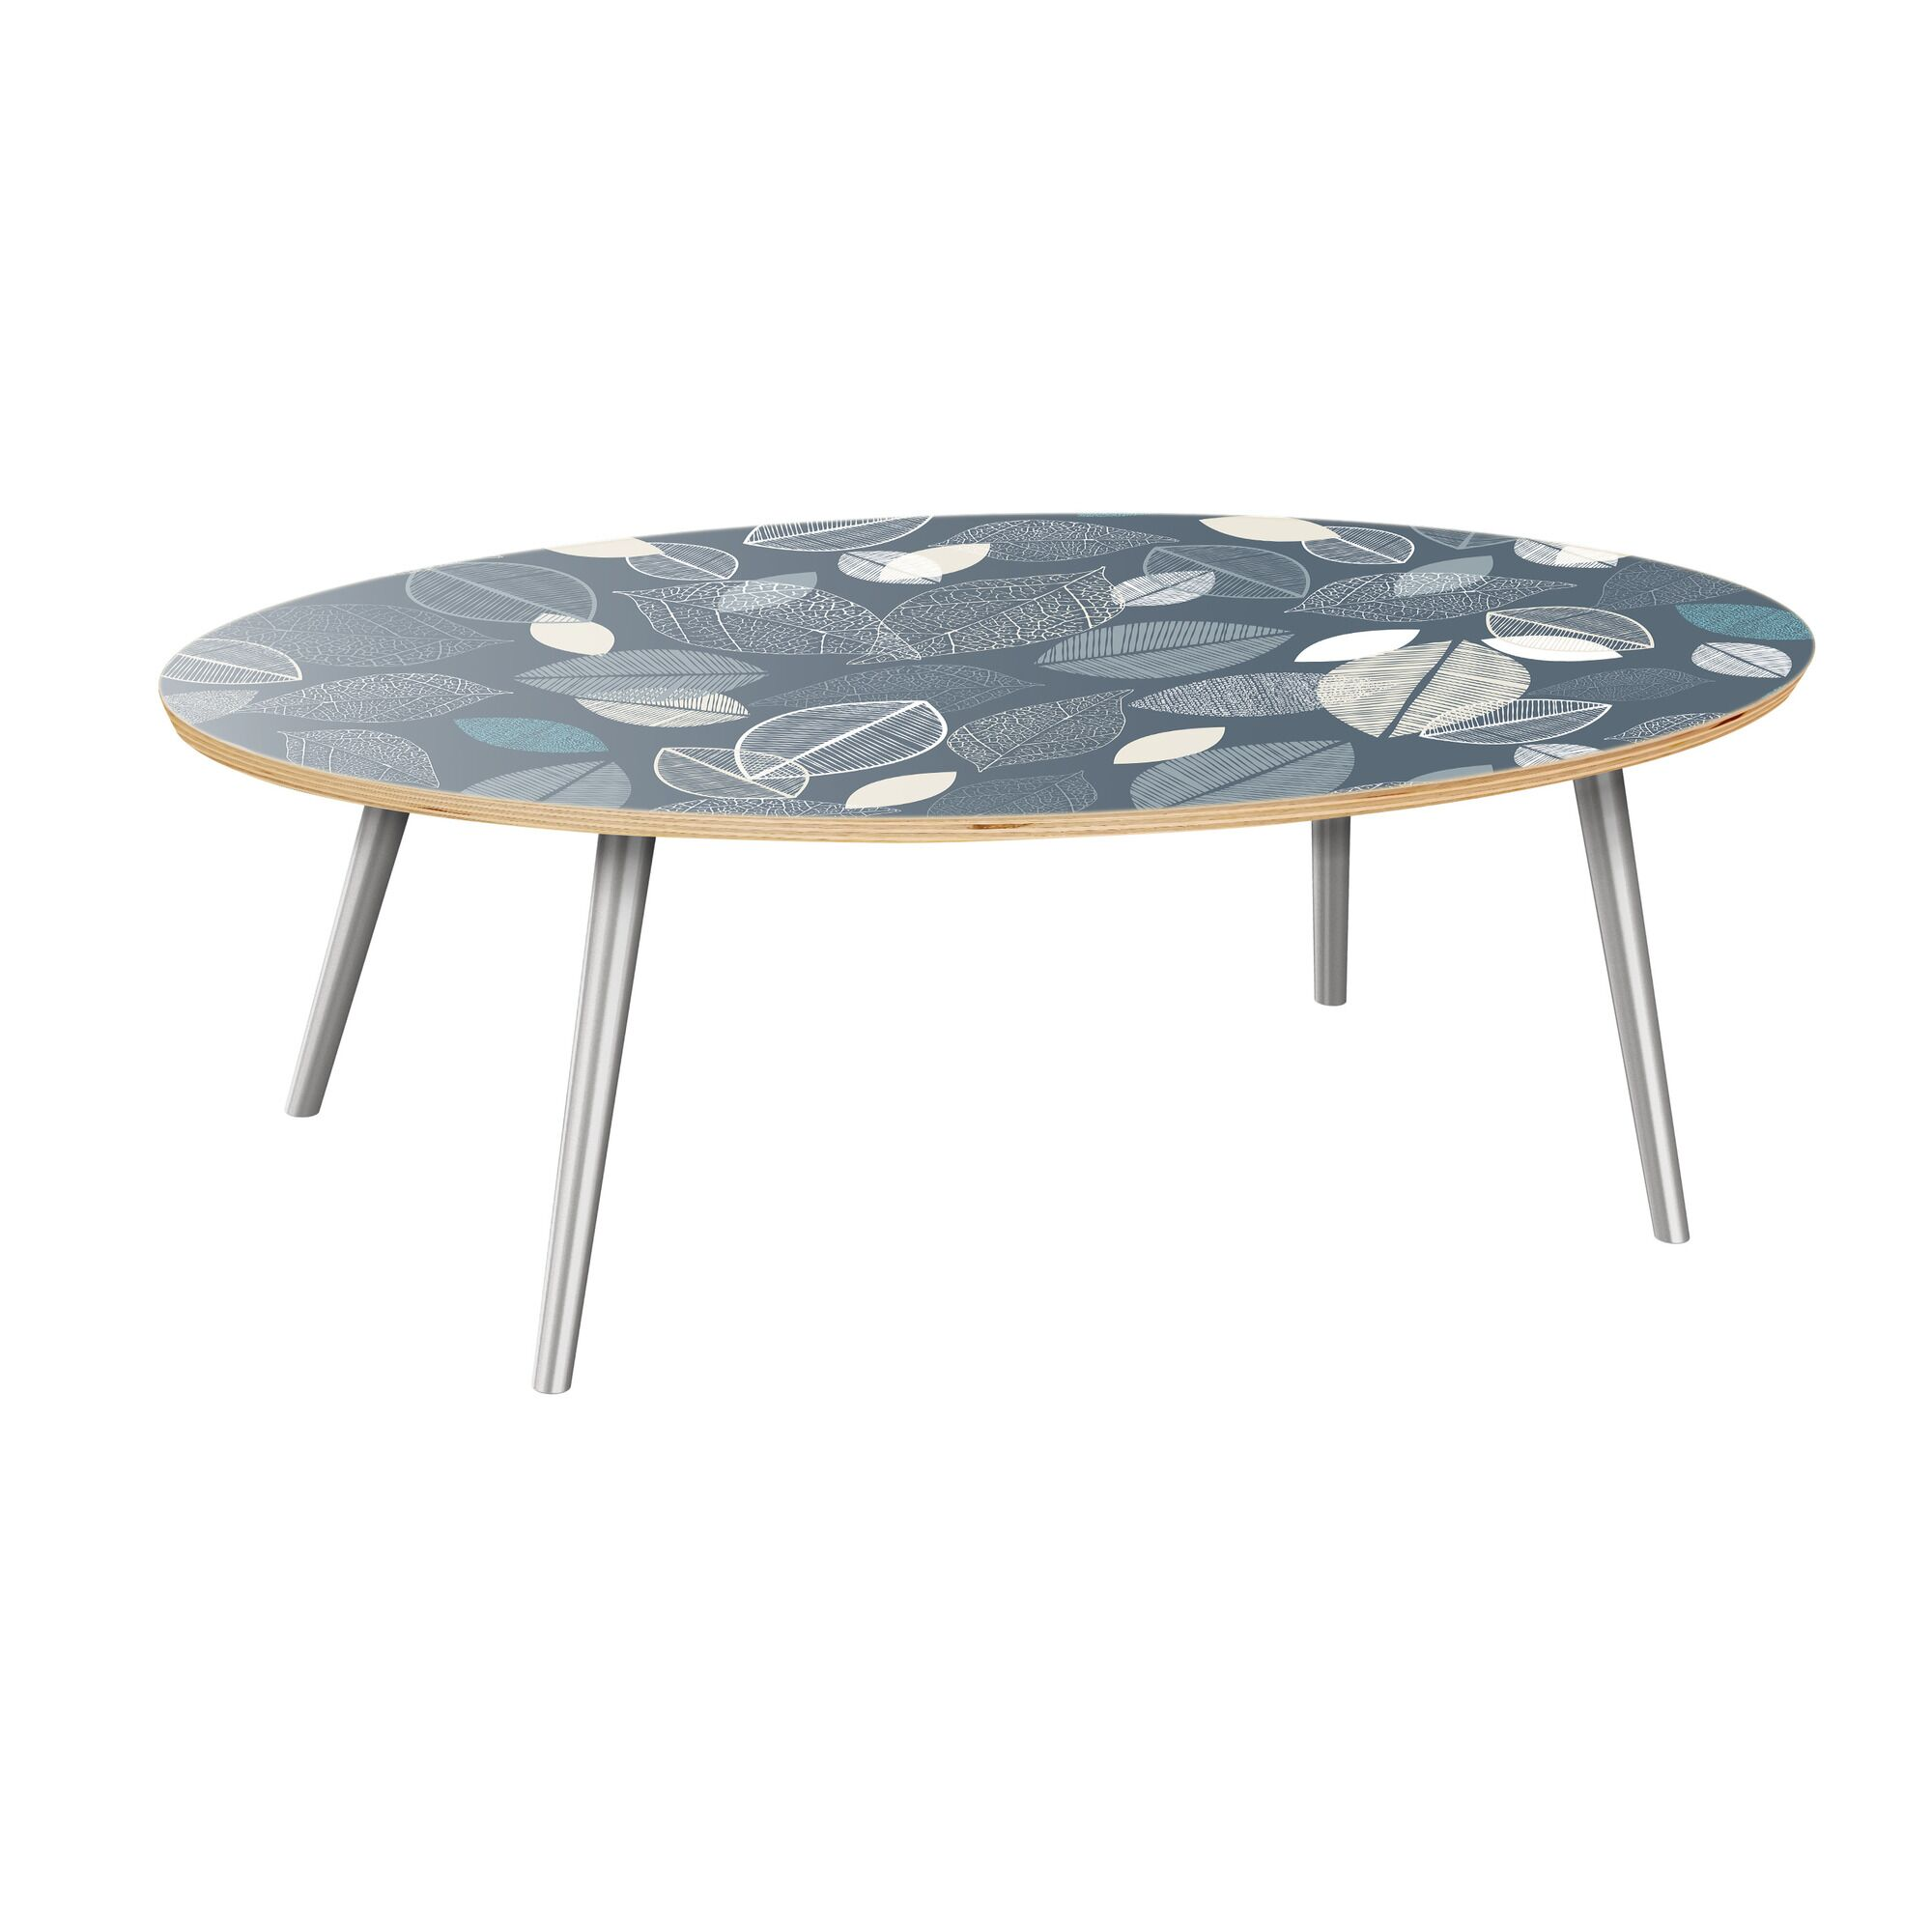 Kirstin Coffee Table Table Top Boarder Color: Natural, Table Base Color: Chrome, Table Top Color: Green/Brown